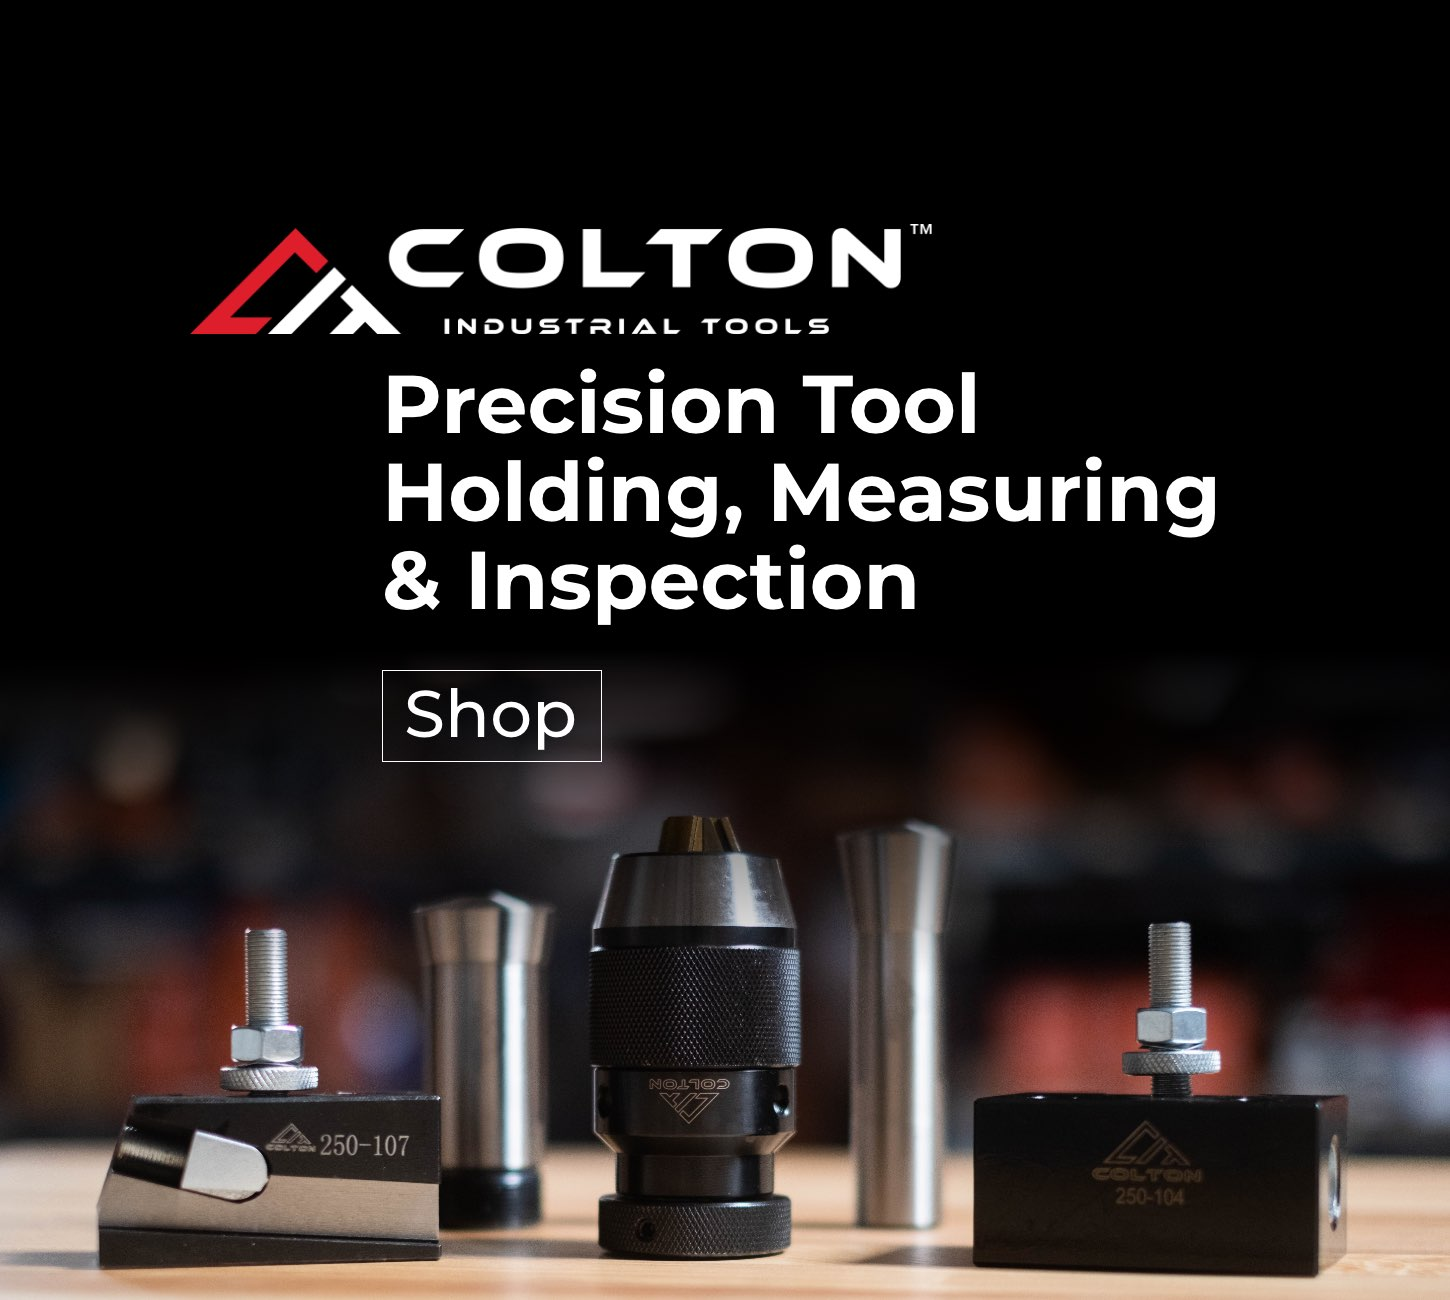 Colton Industrial Tools - Precision Tool Holding, Measuring & Inspection